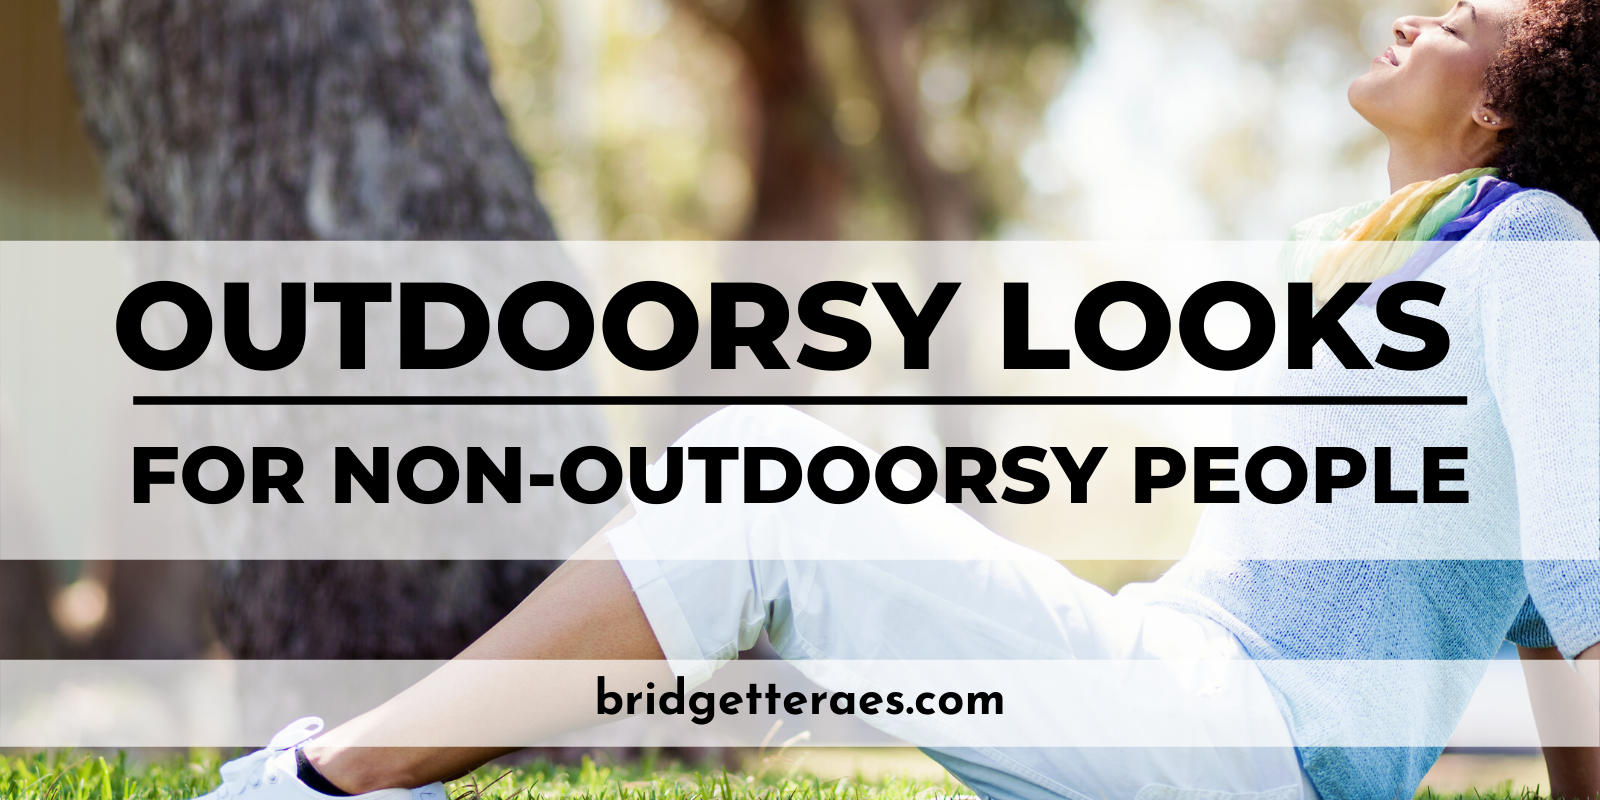 Outdoorsy Looks for Non-Outdoorsy People